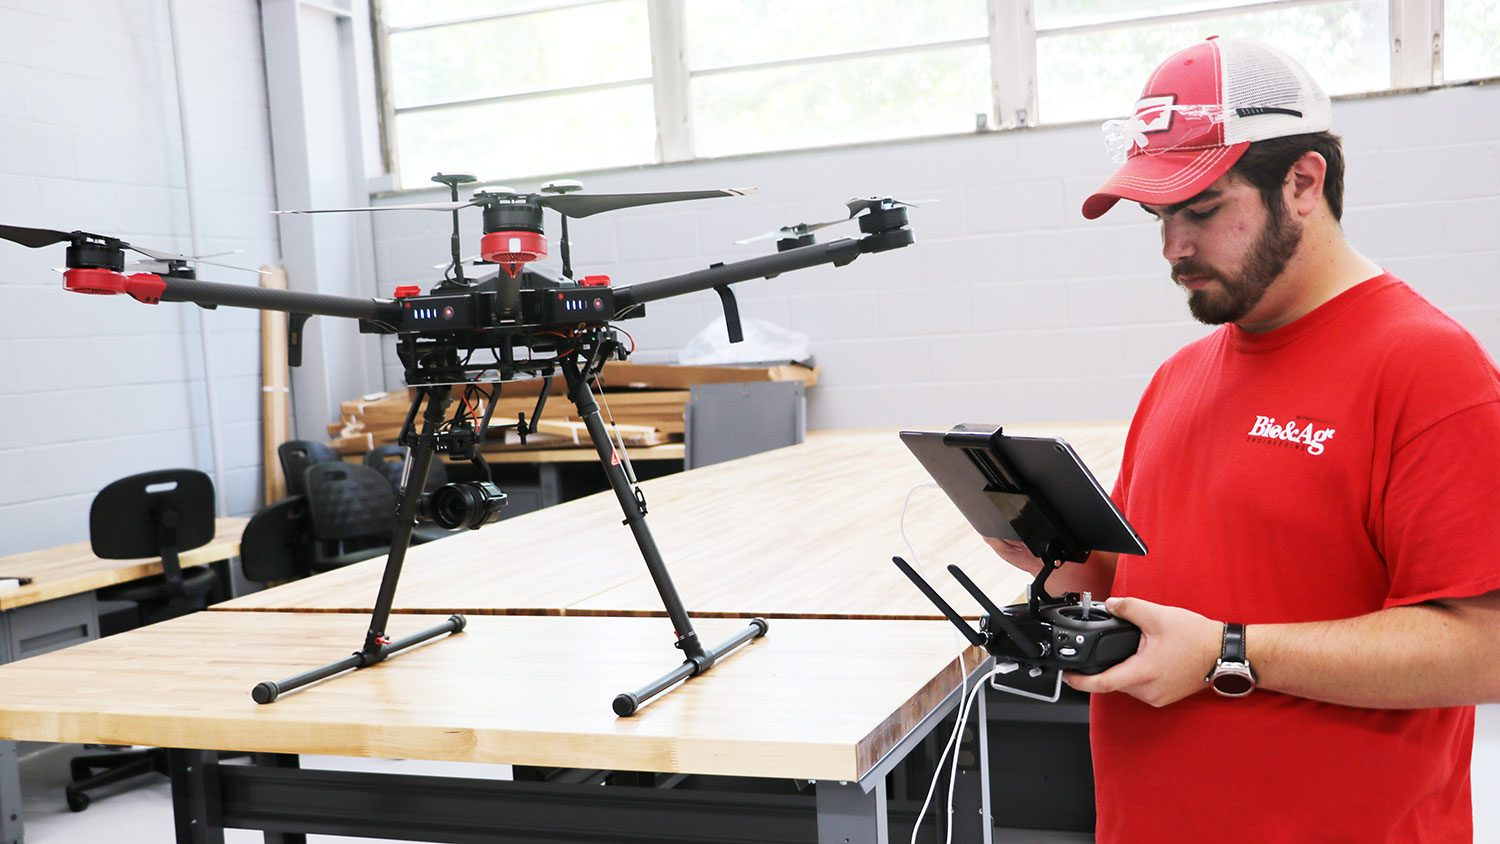 Man looking at the controls for a drone that is sitting on the table next to him.